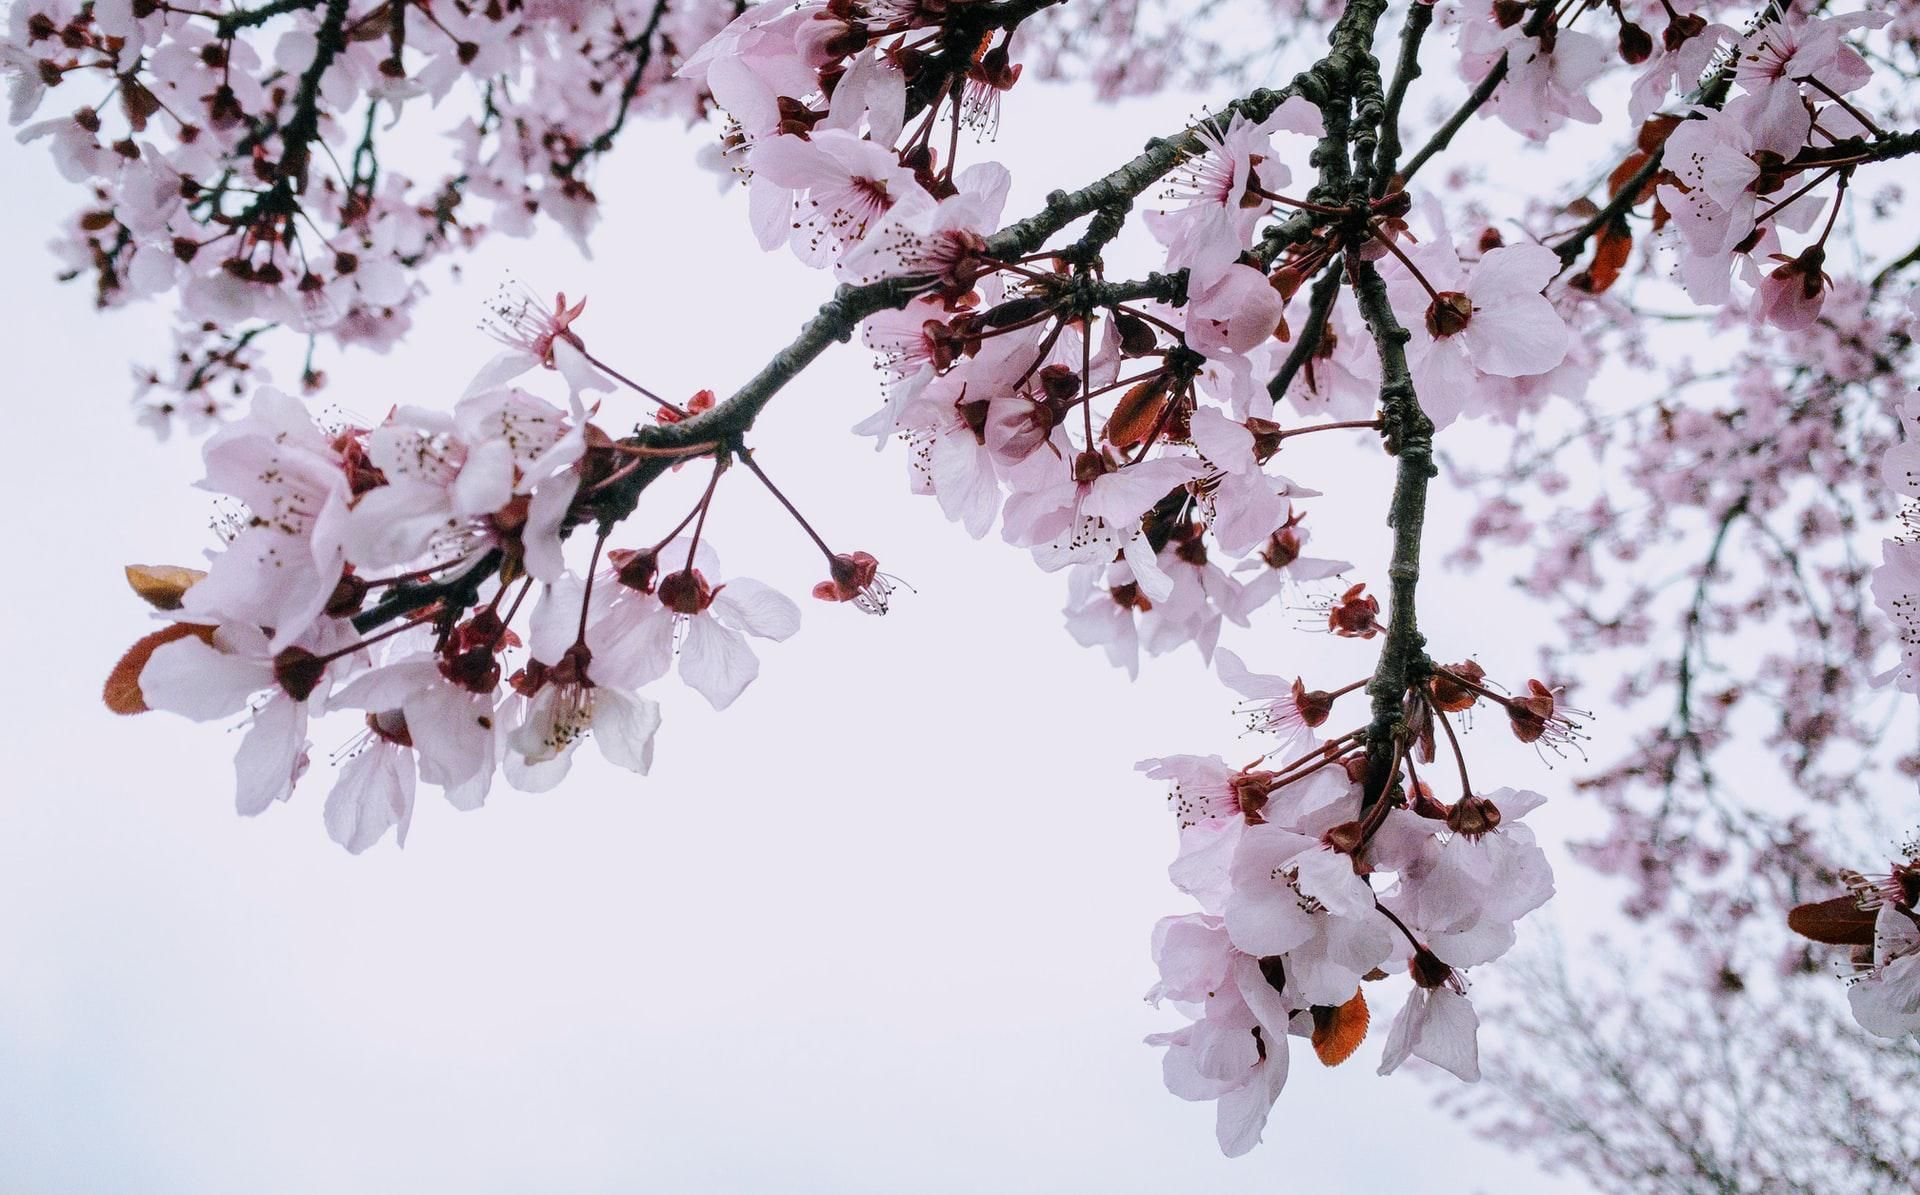 How to identify trees by looking at their flowers